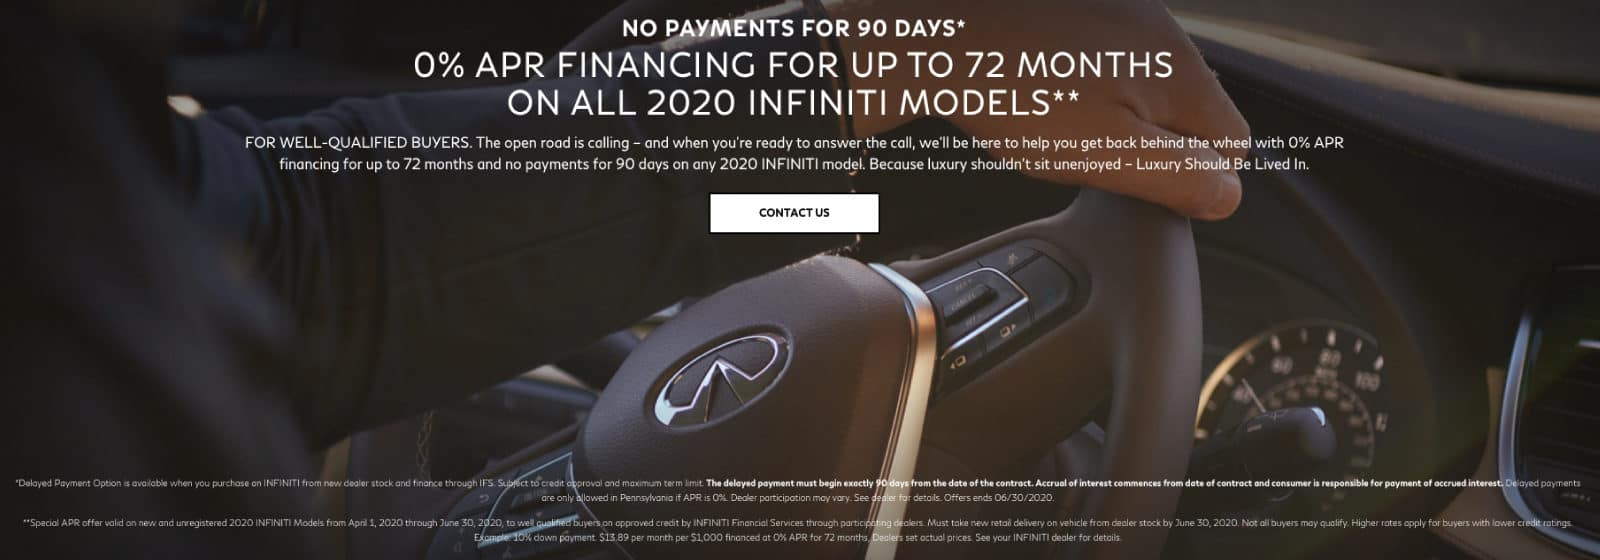 INFINITI_Covid_Response 0% APR for 72 months offer. Offer ends 6/30/2020.